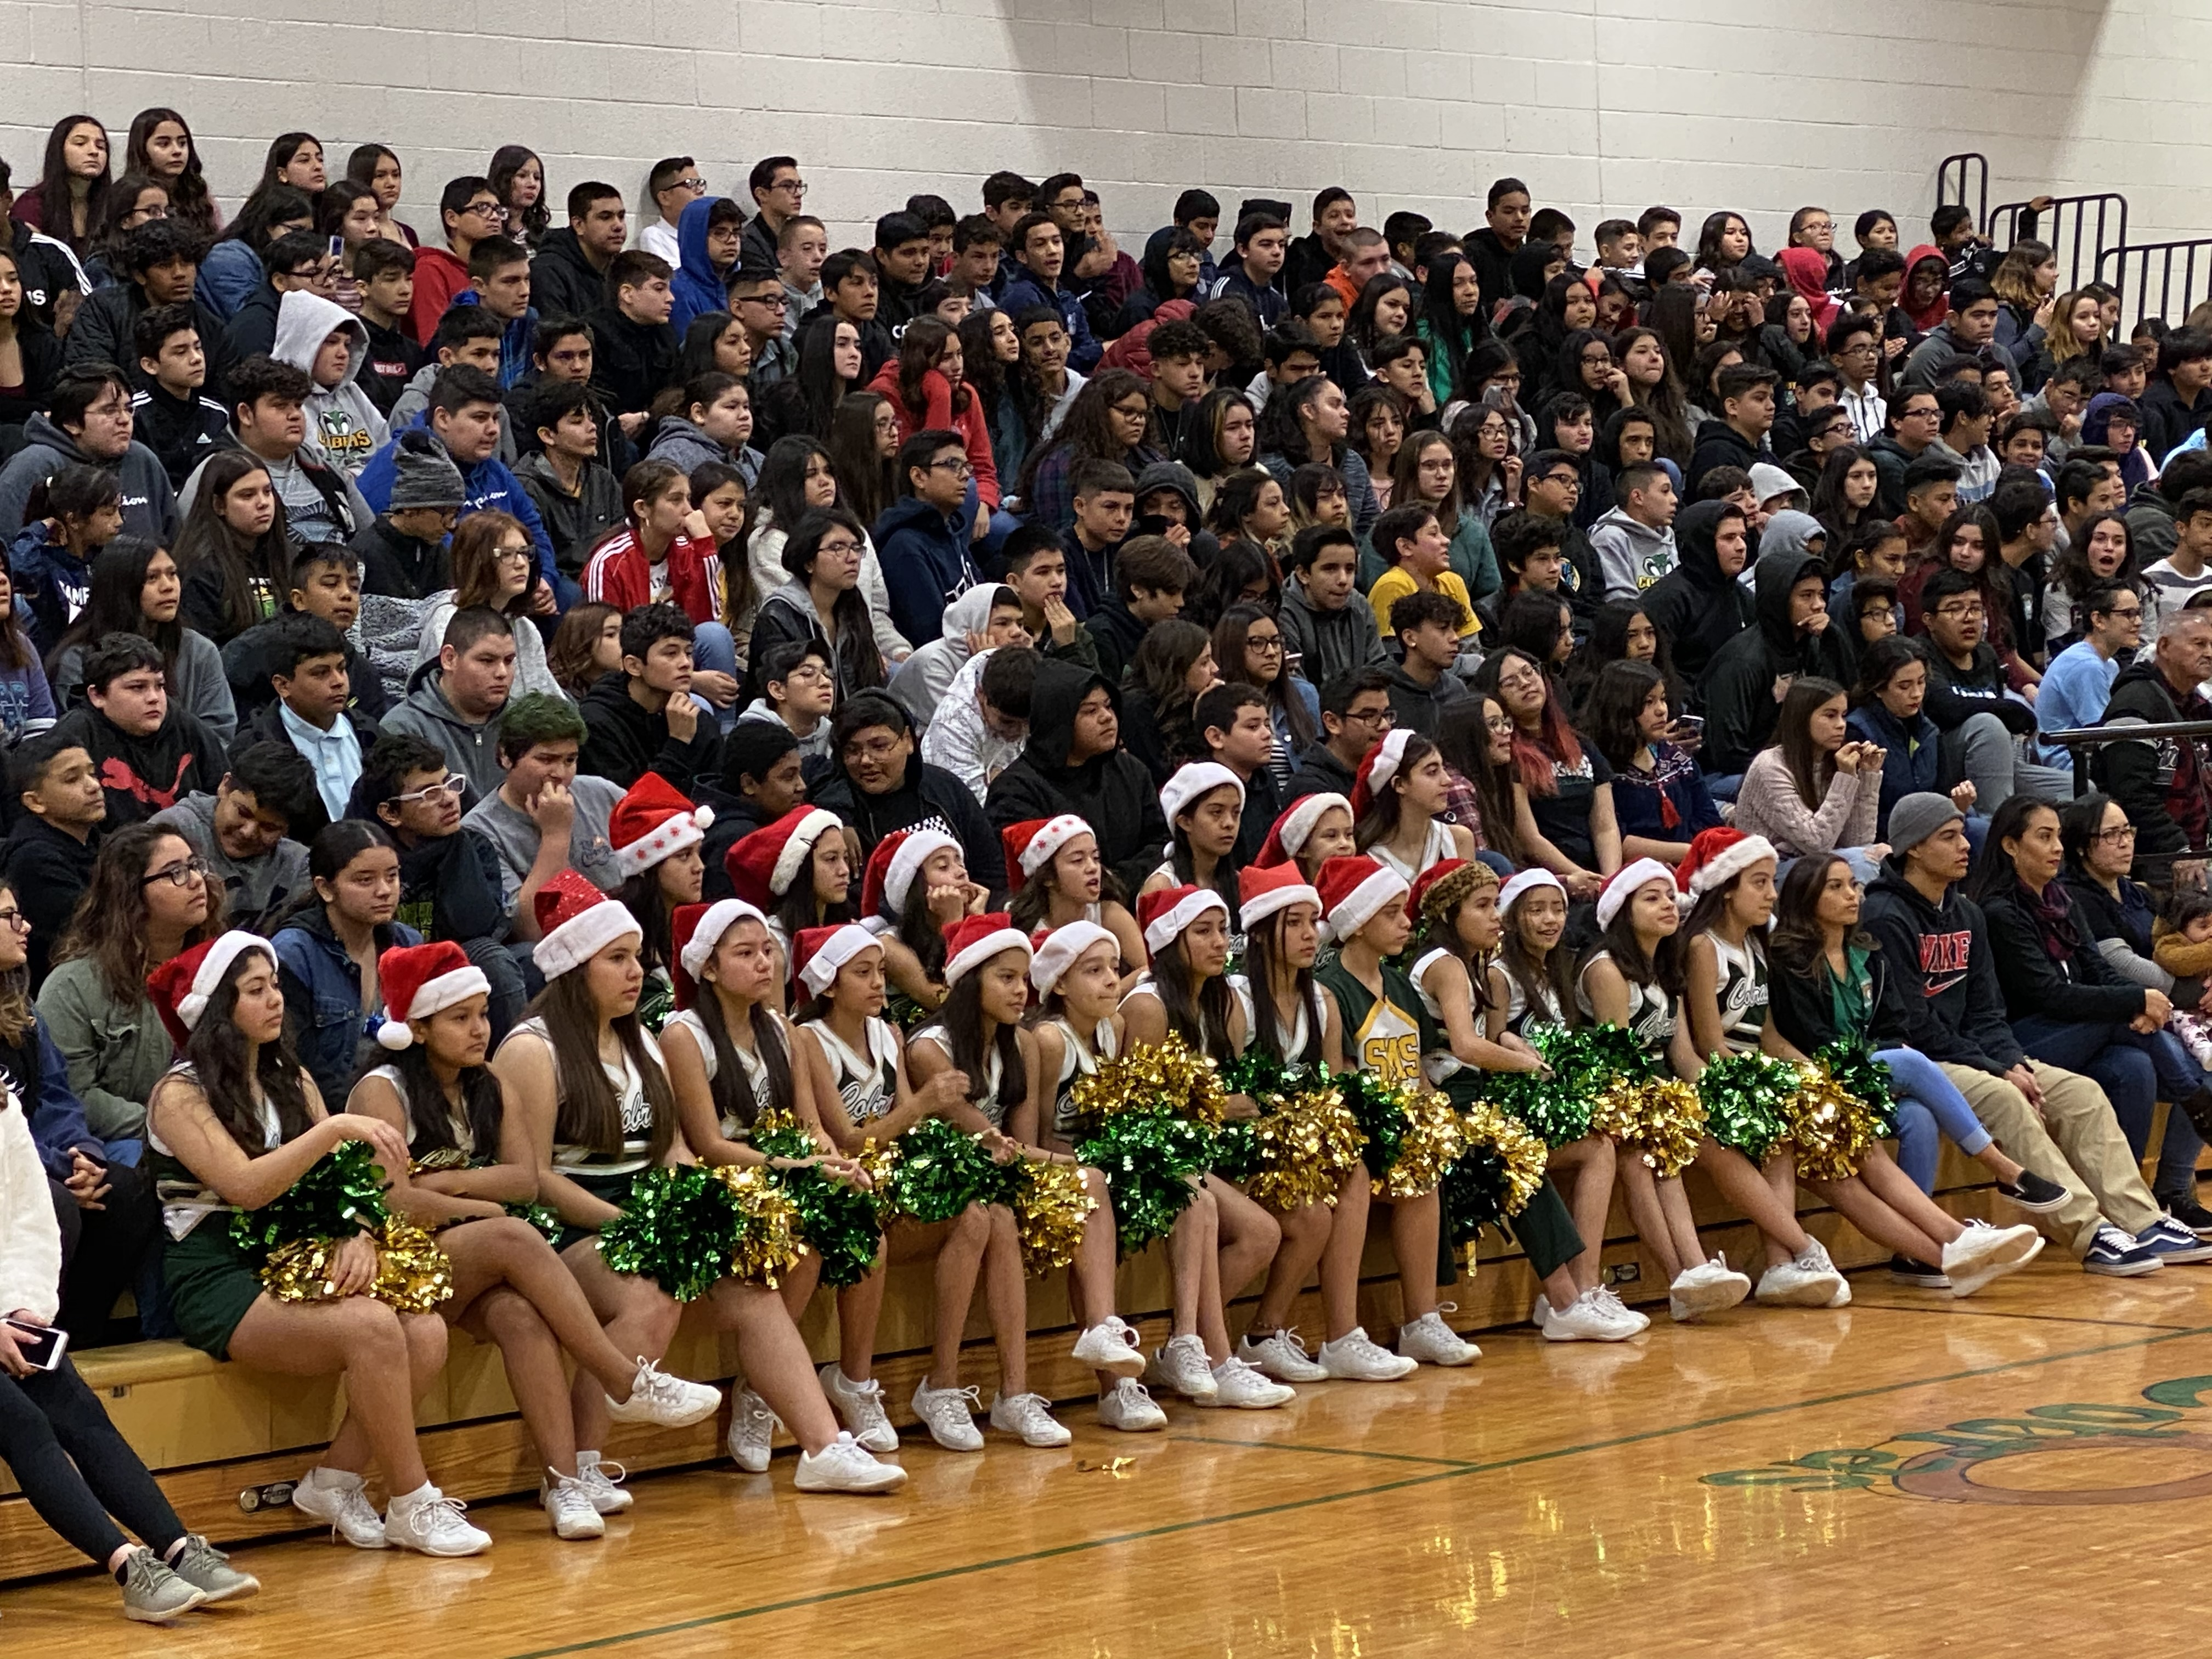 Cheerleaders and students at the winter assembly